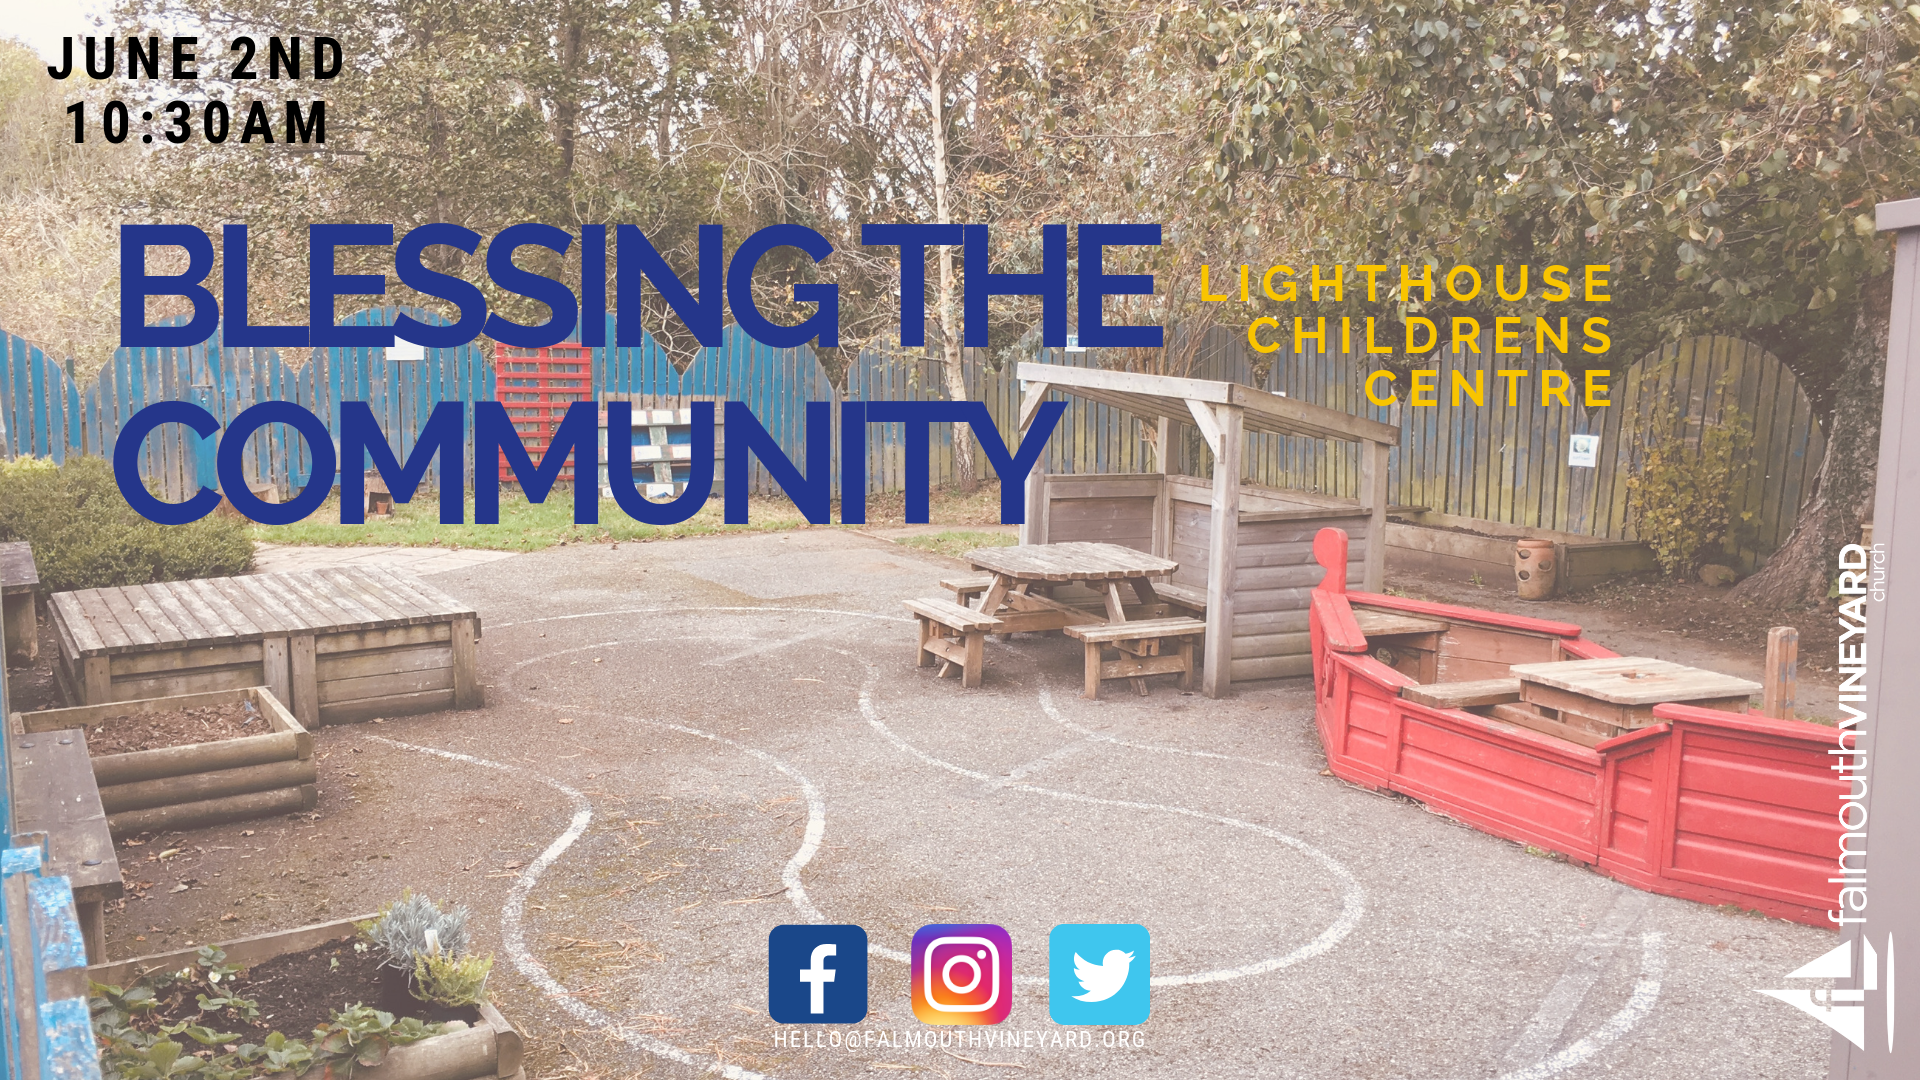 Falmouth Vineyard Lighthouse Childrens Centre 02.06.19